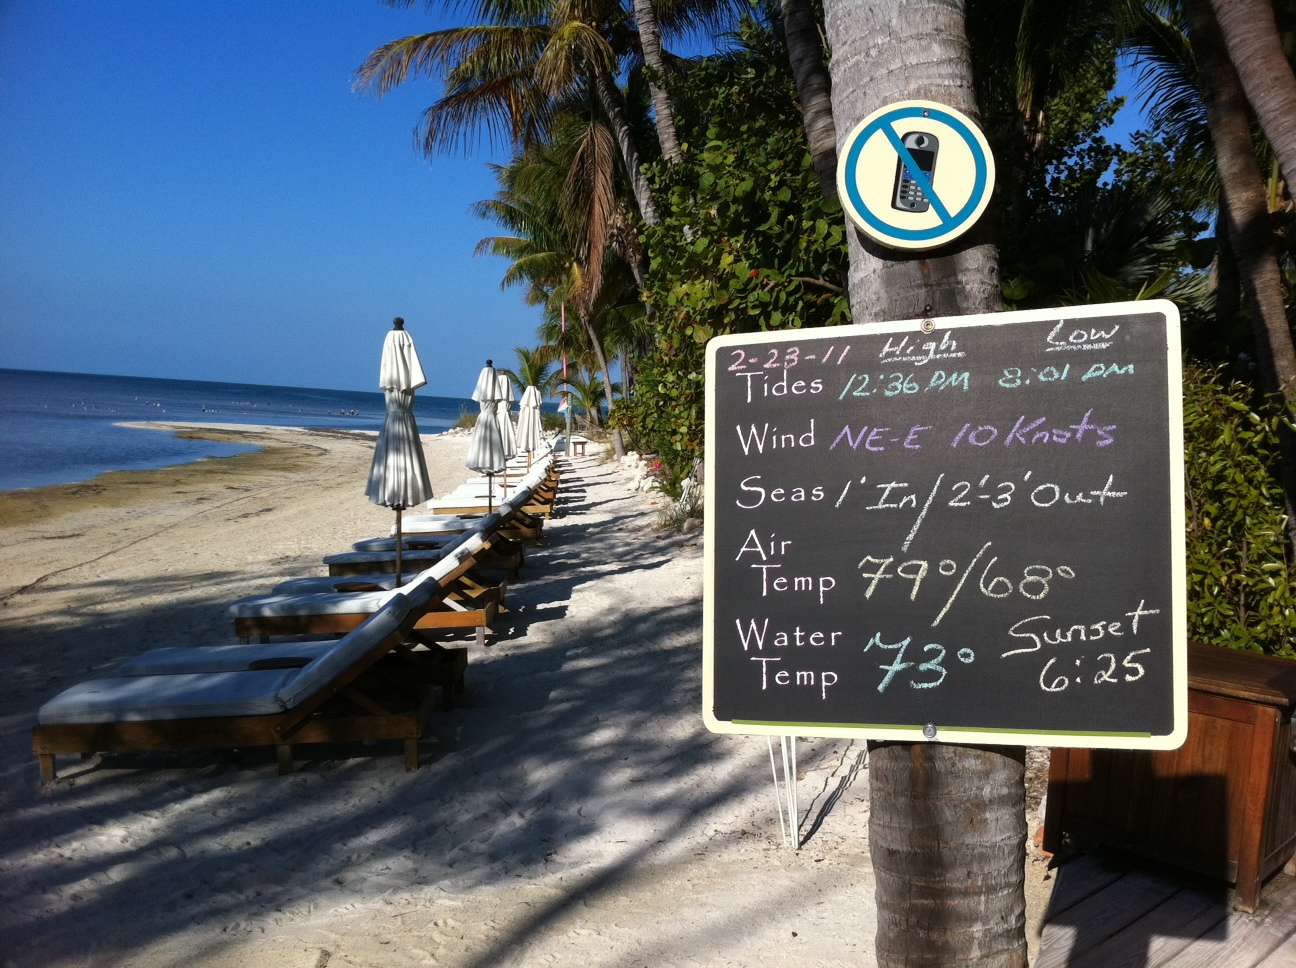 Weather report from Little Palm Island Resort